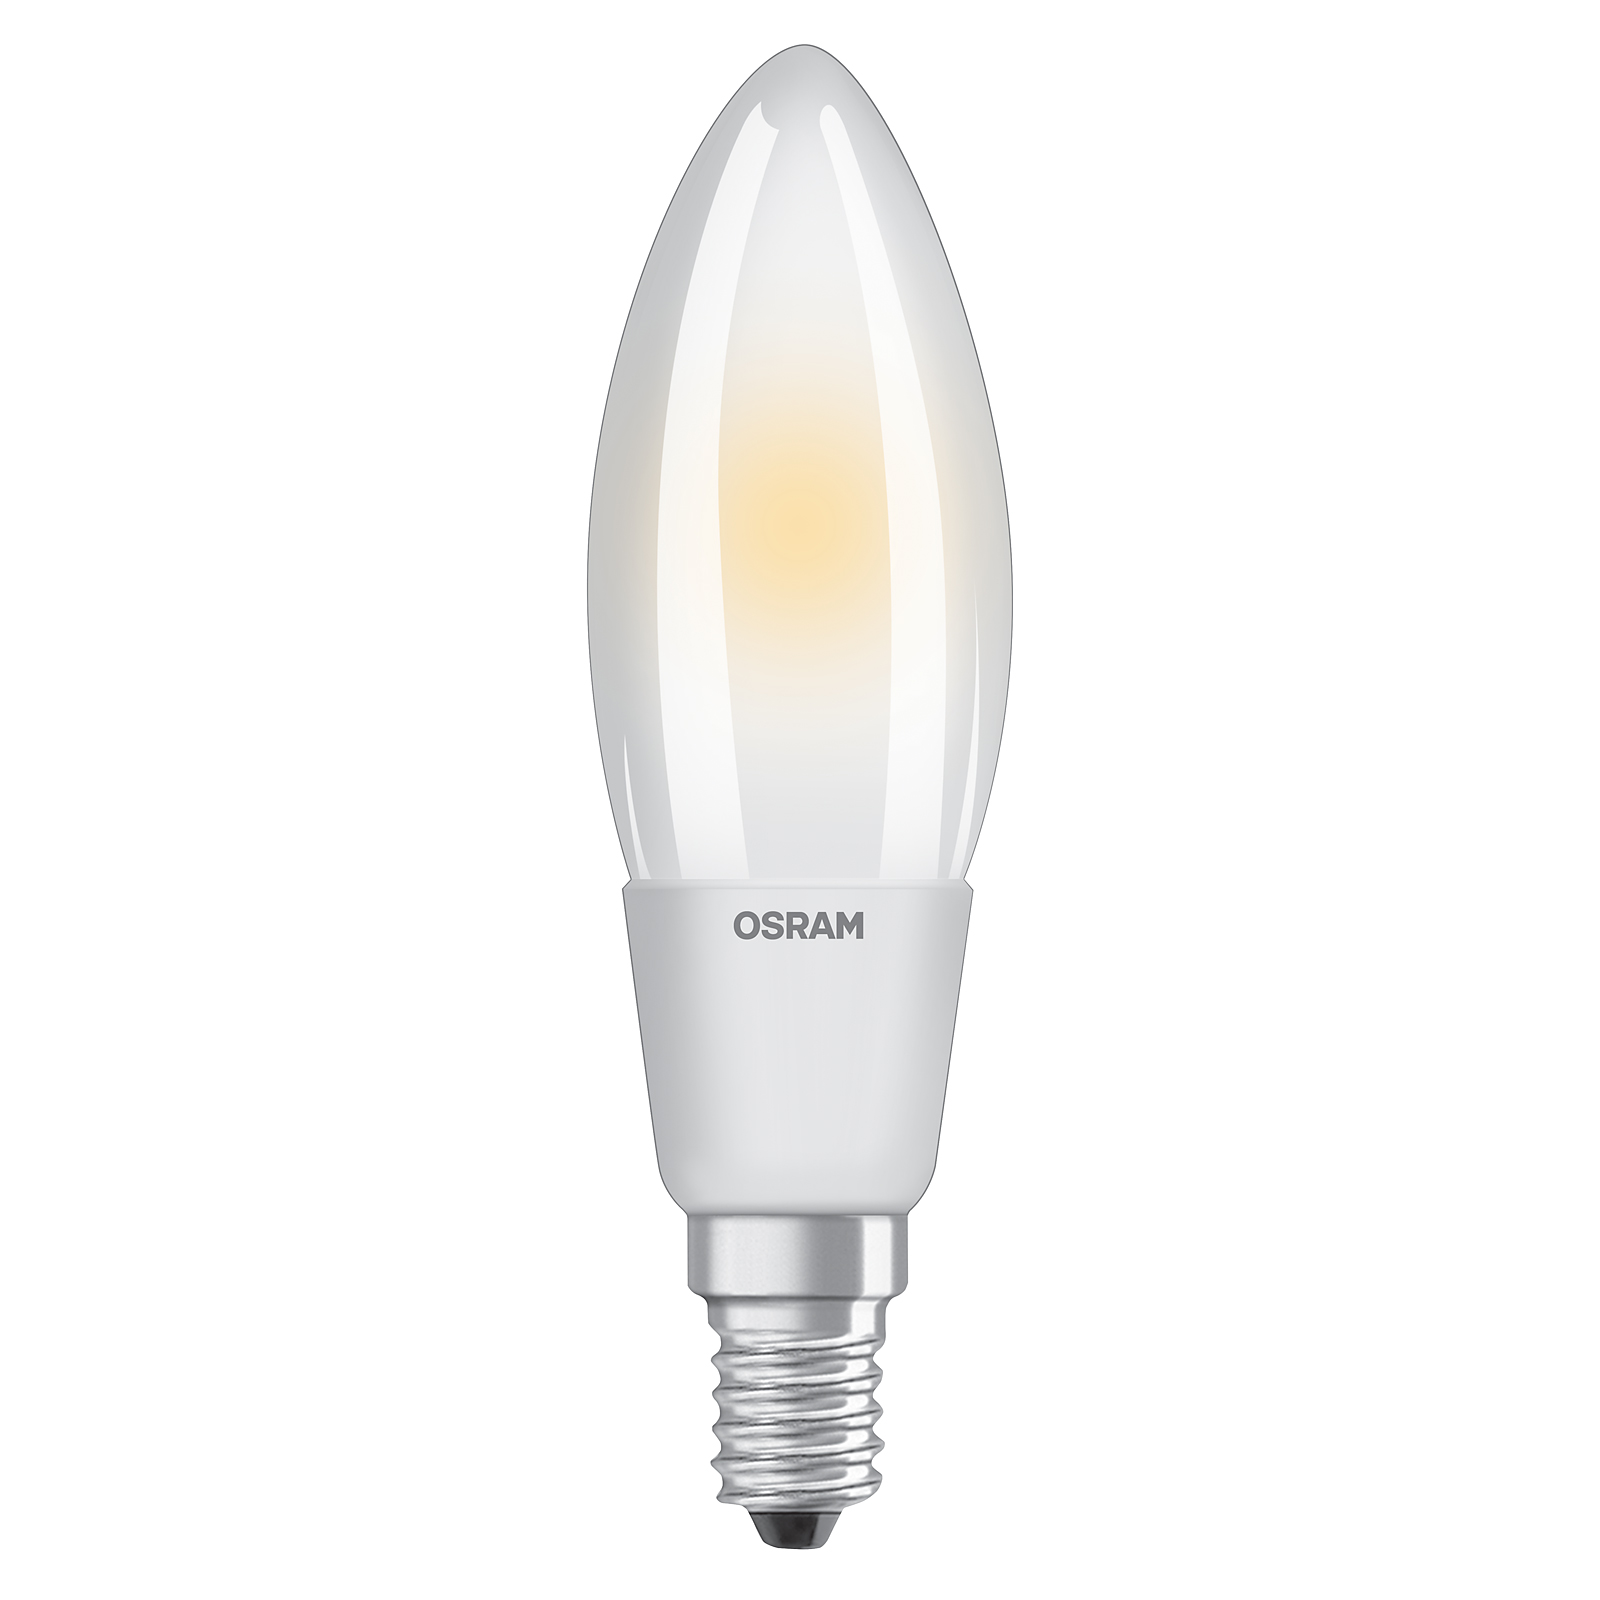 Osram retrofit led classic b 40 e14 5w wie 40 watt 470 for Led lampen 0 5 watt